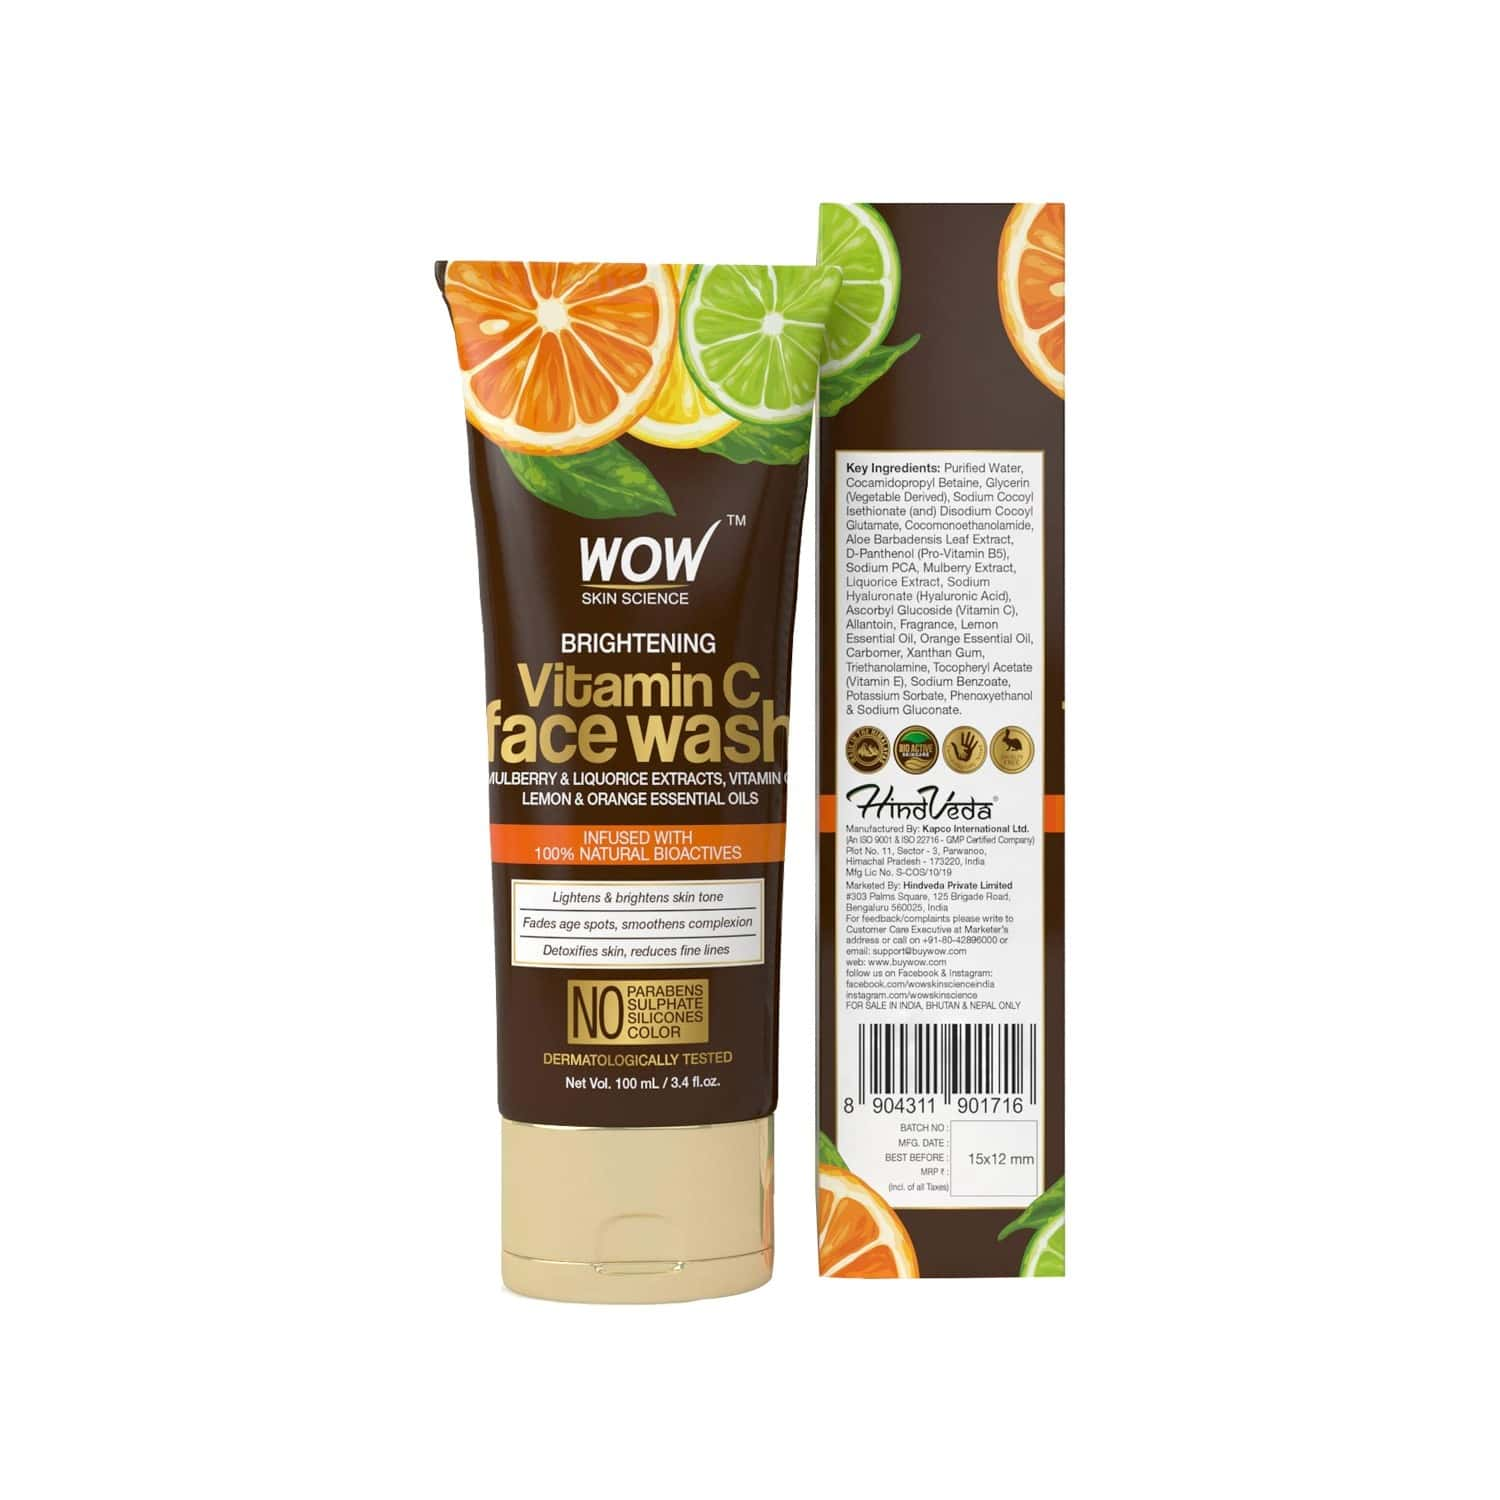 Wow Skin Science Vitamin C Face Wash Tube - 100 Ml